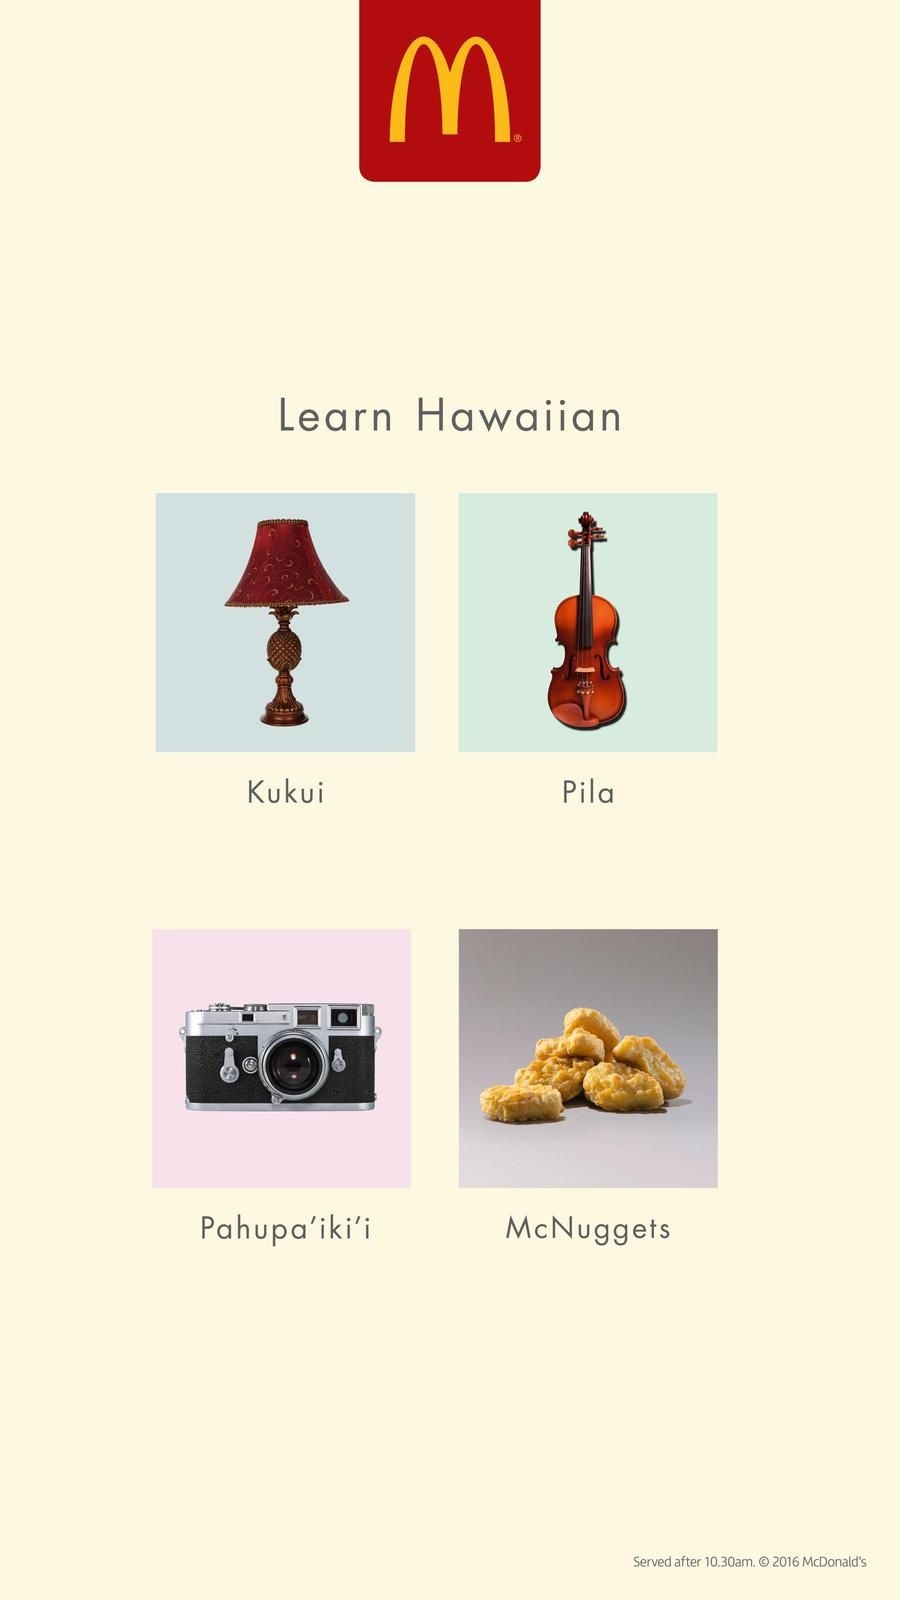 """Learn Hawaïian"" - McDonald's I Agence : Leo Burnett, Londres, Royaume-Uni (octobre 2016)"